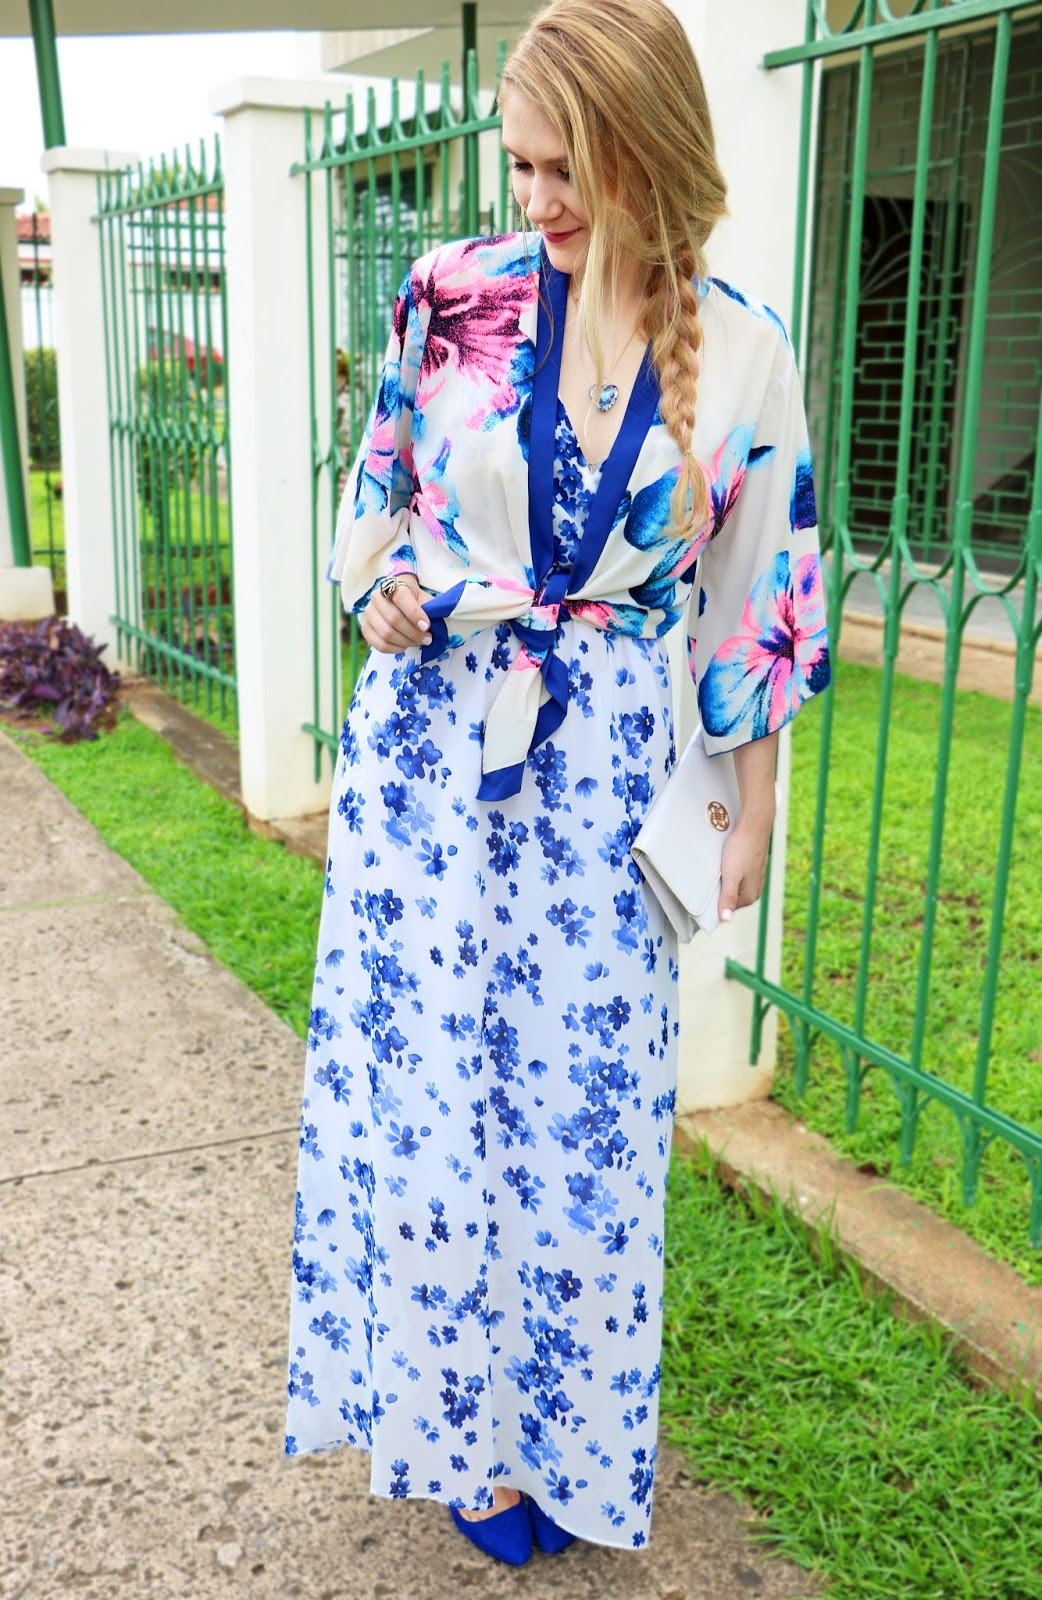 Mix two floral prints for one bold Spring outfit!